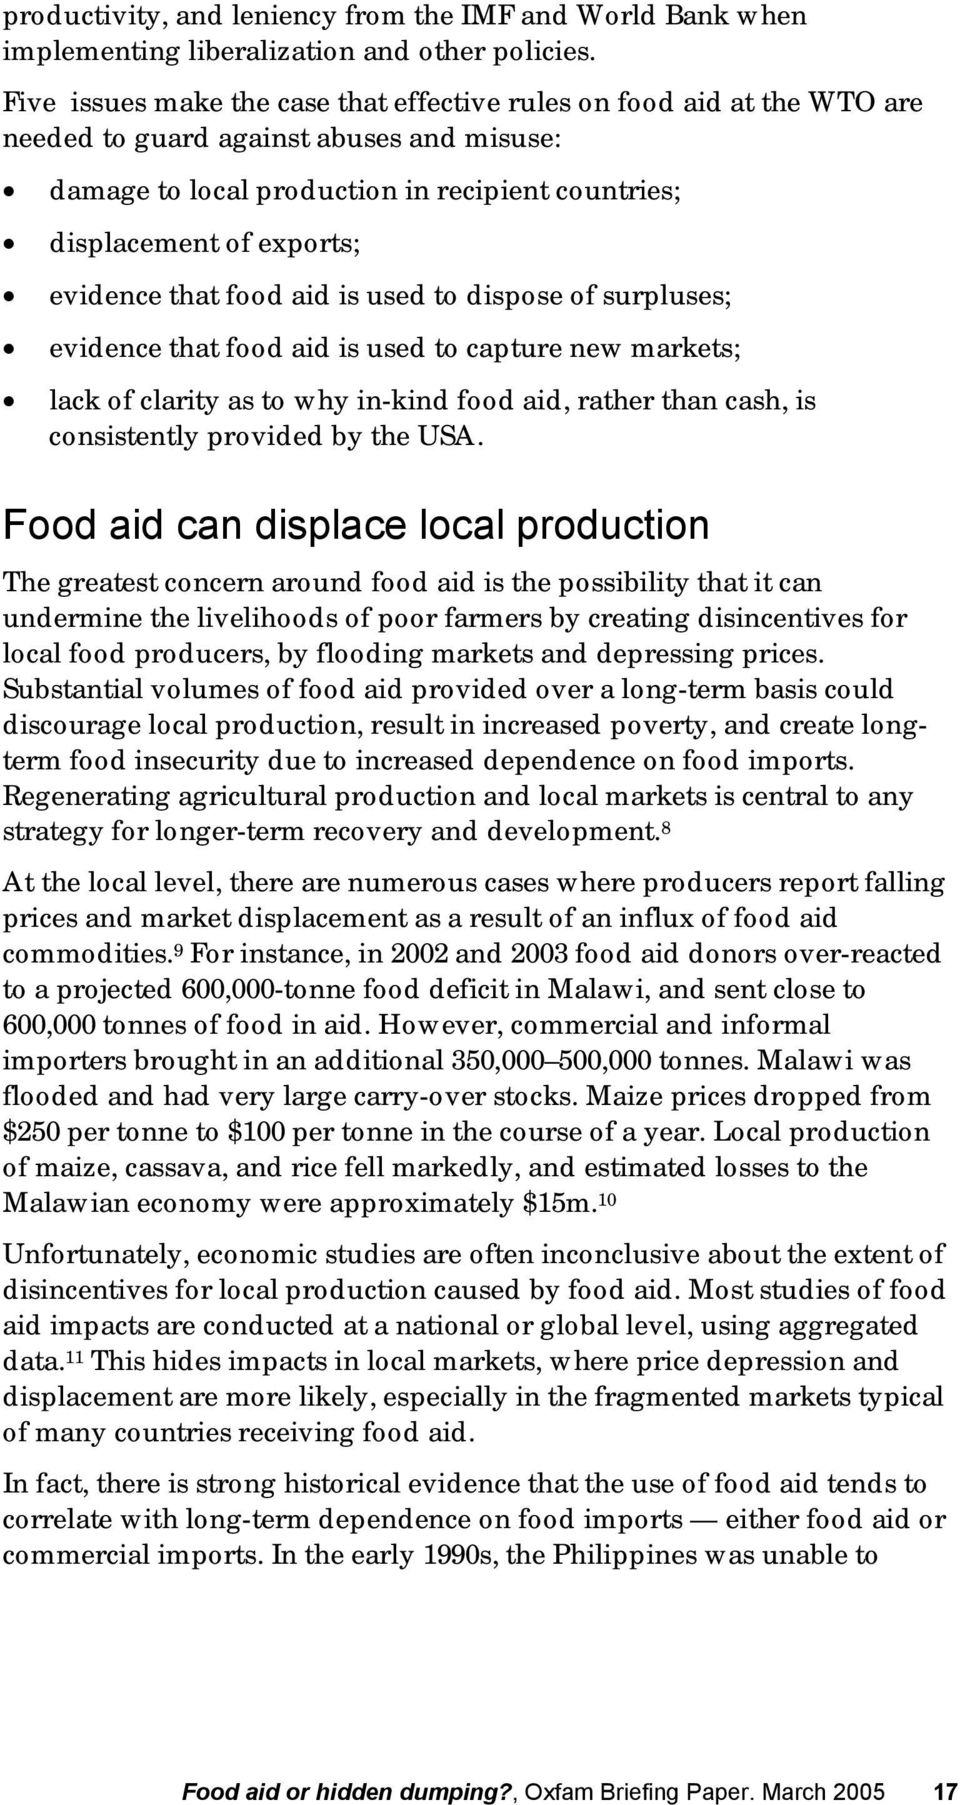 evidence that food aid is used to dispose of surpluses; evidence that food aid is used to capture new markets; lack of clarity as to why in-kind food aid, rather than cash, is consistently provided